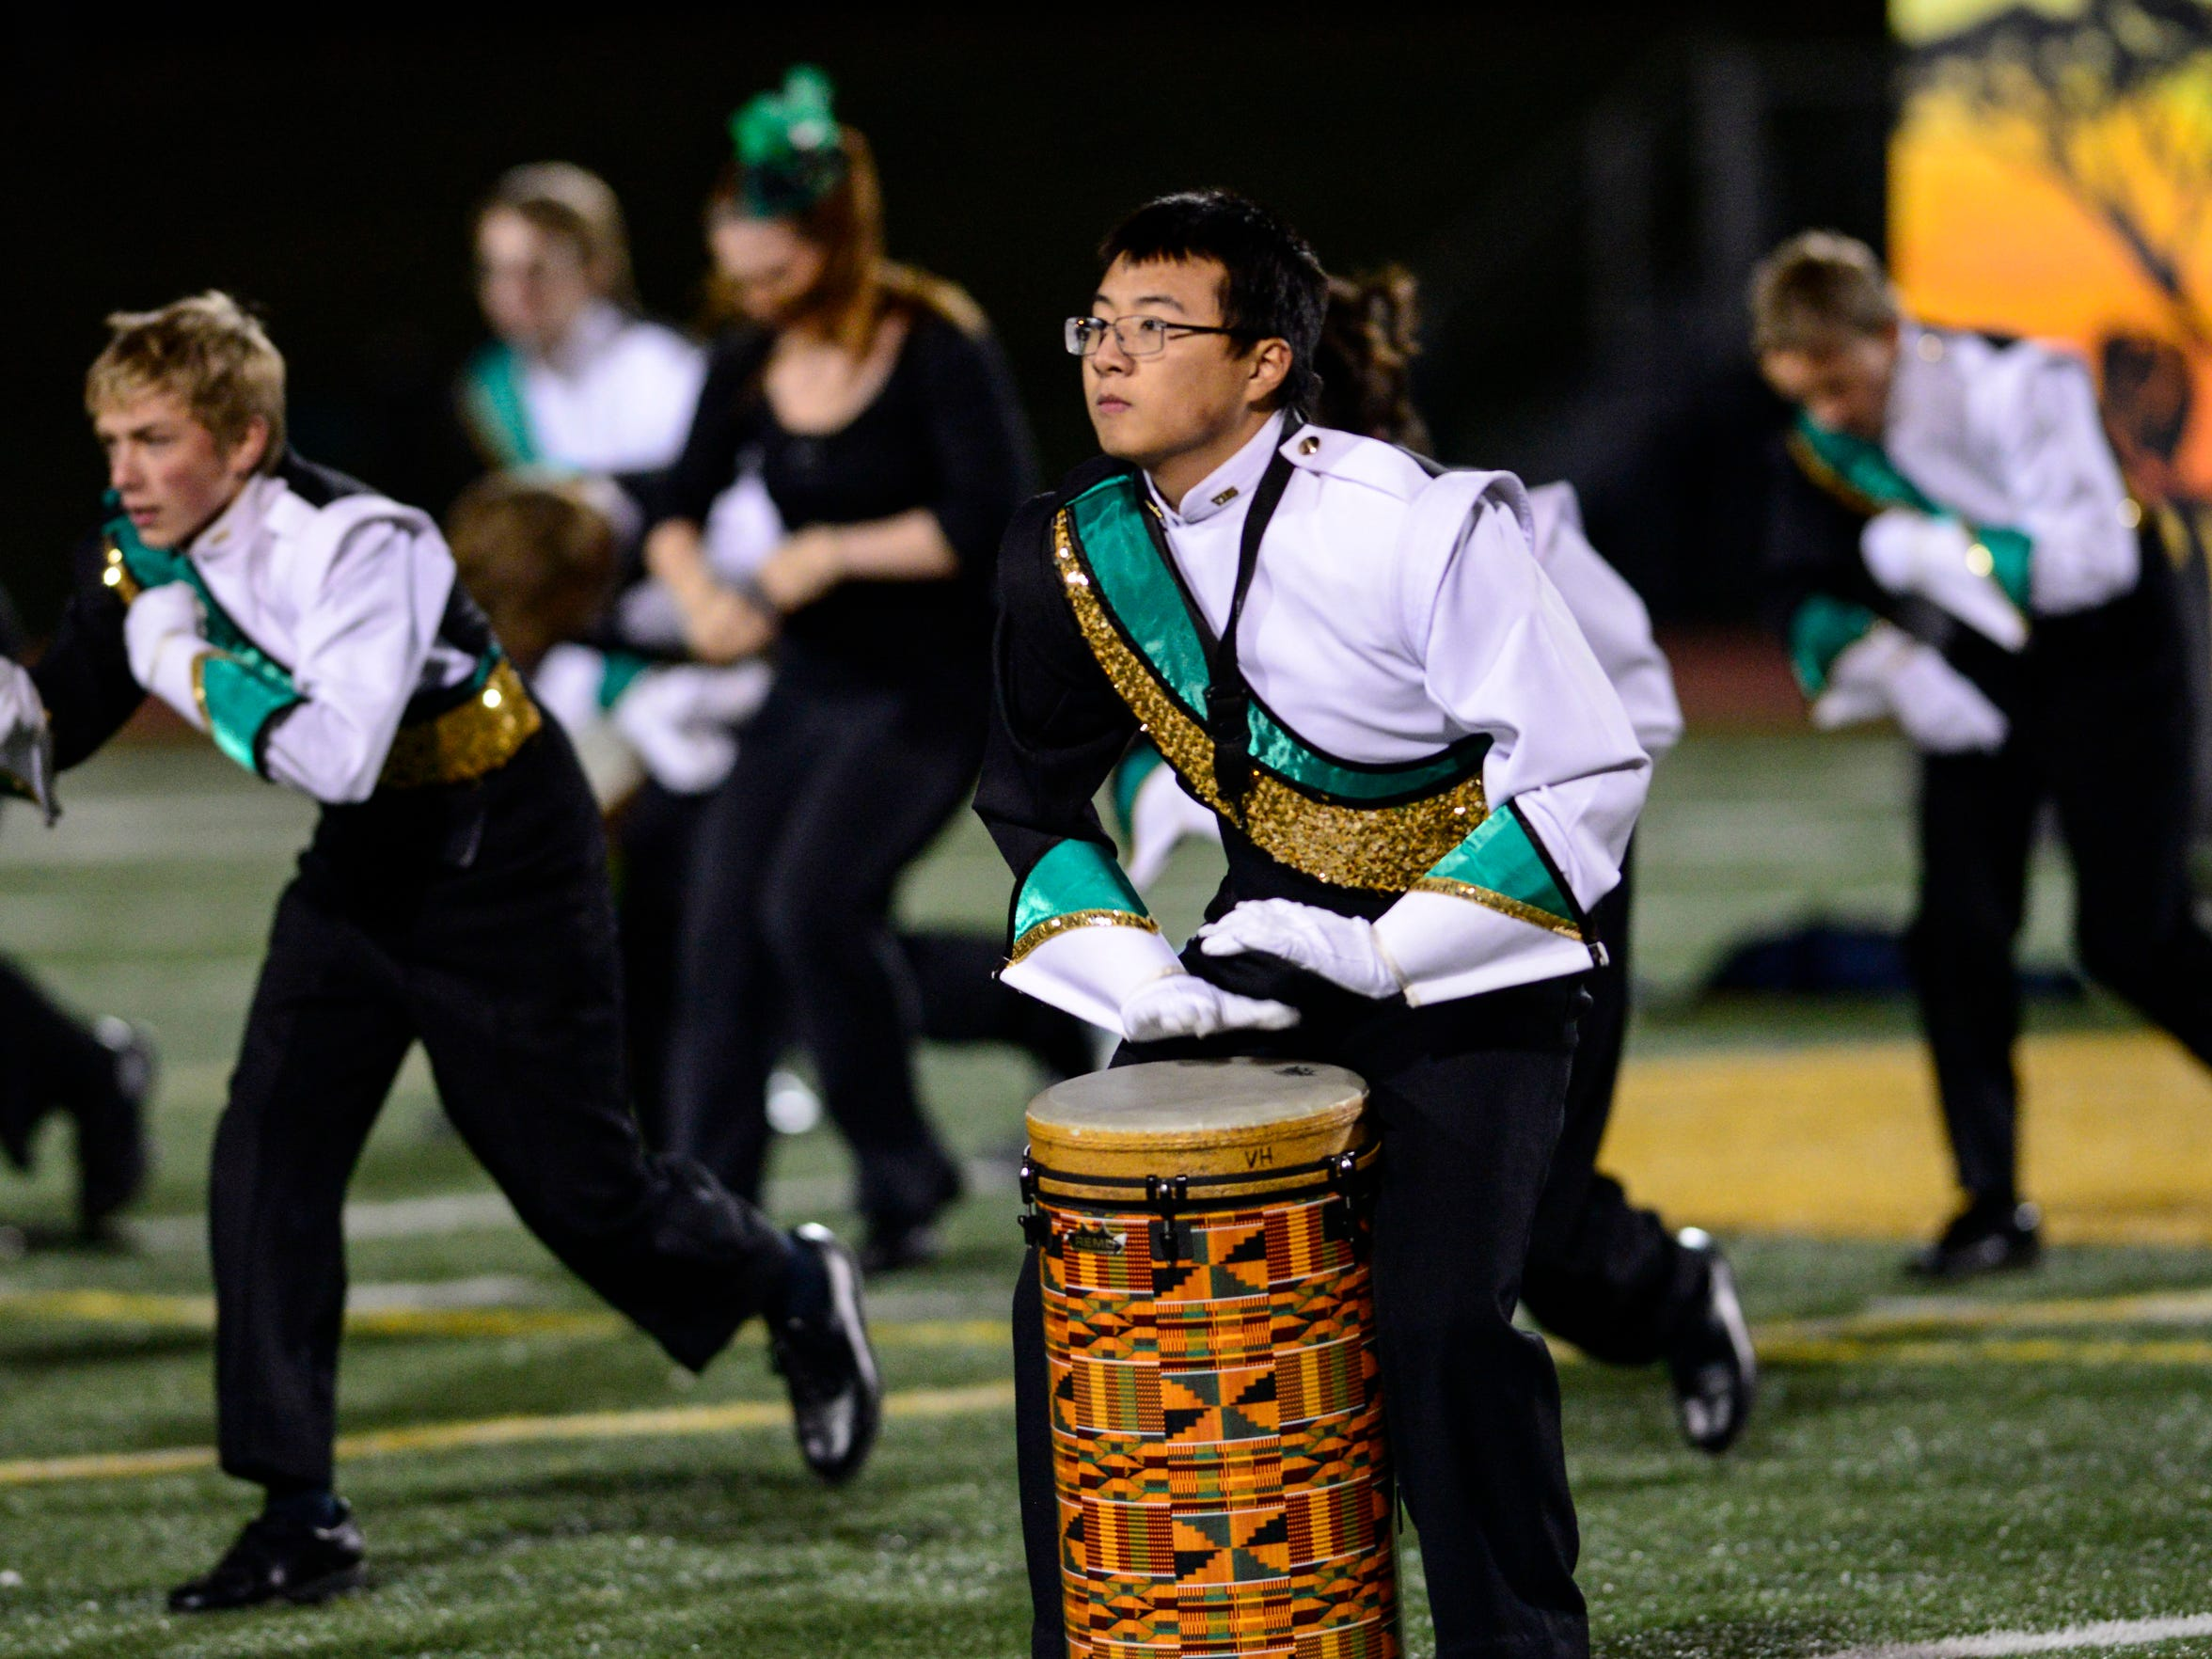 The Vestal Marching Band took center stage during the